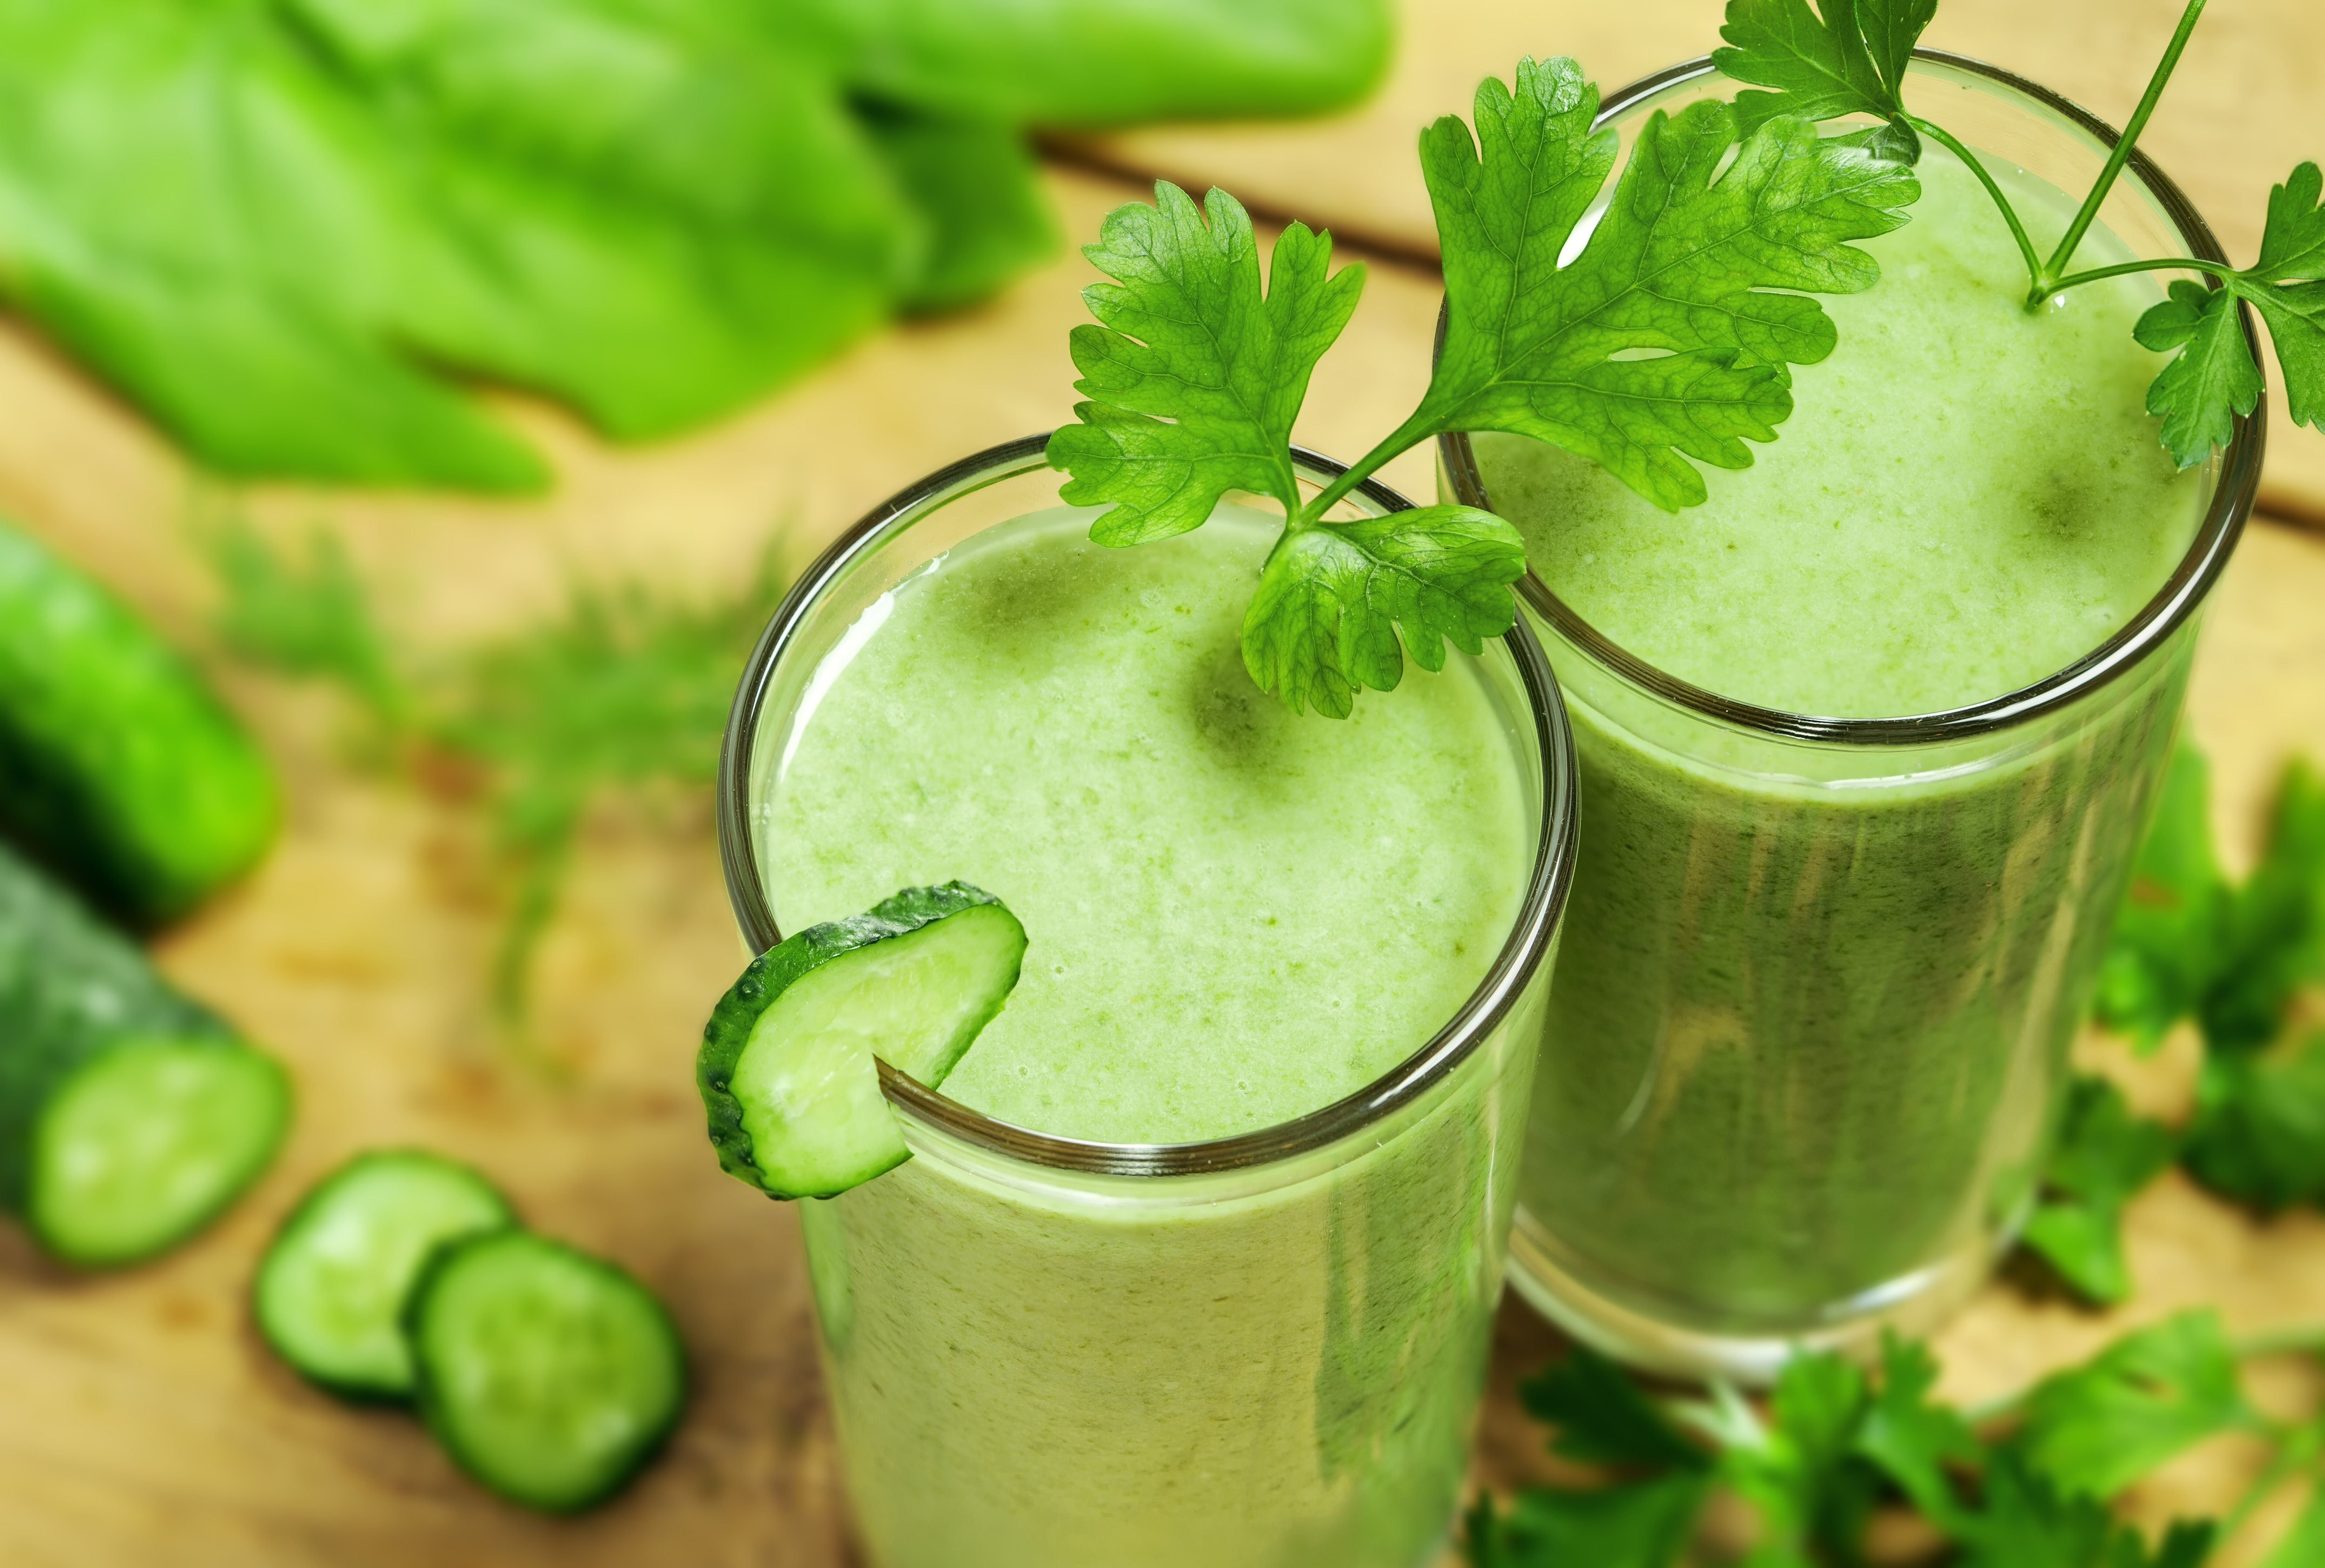 Adjusting green smoothie proportions is easy